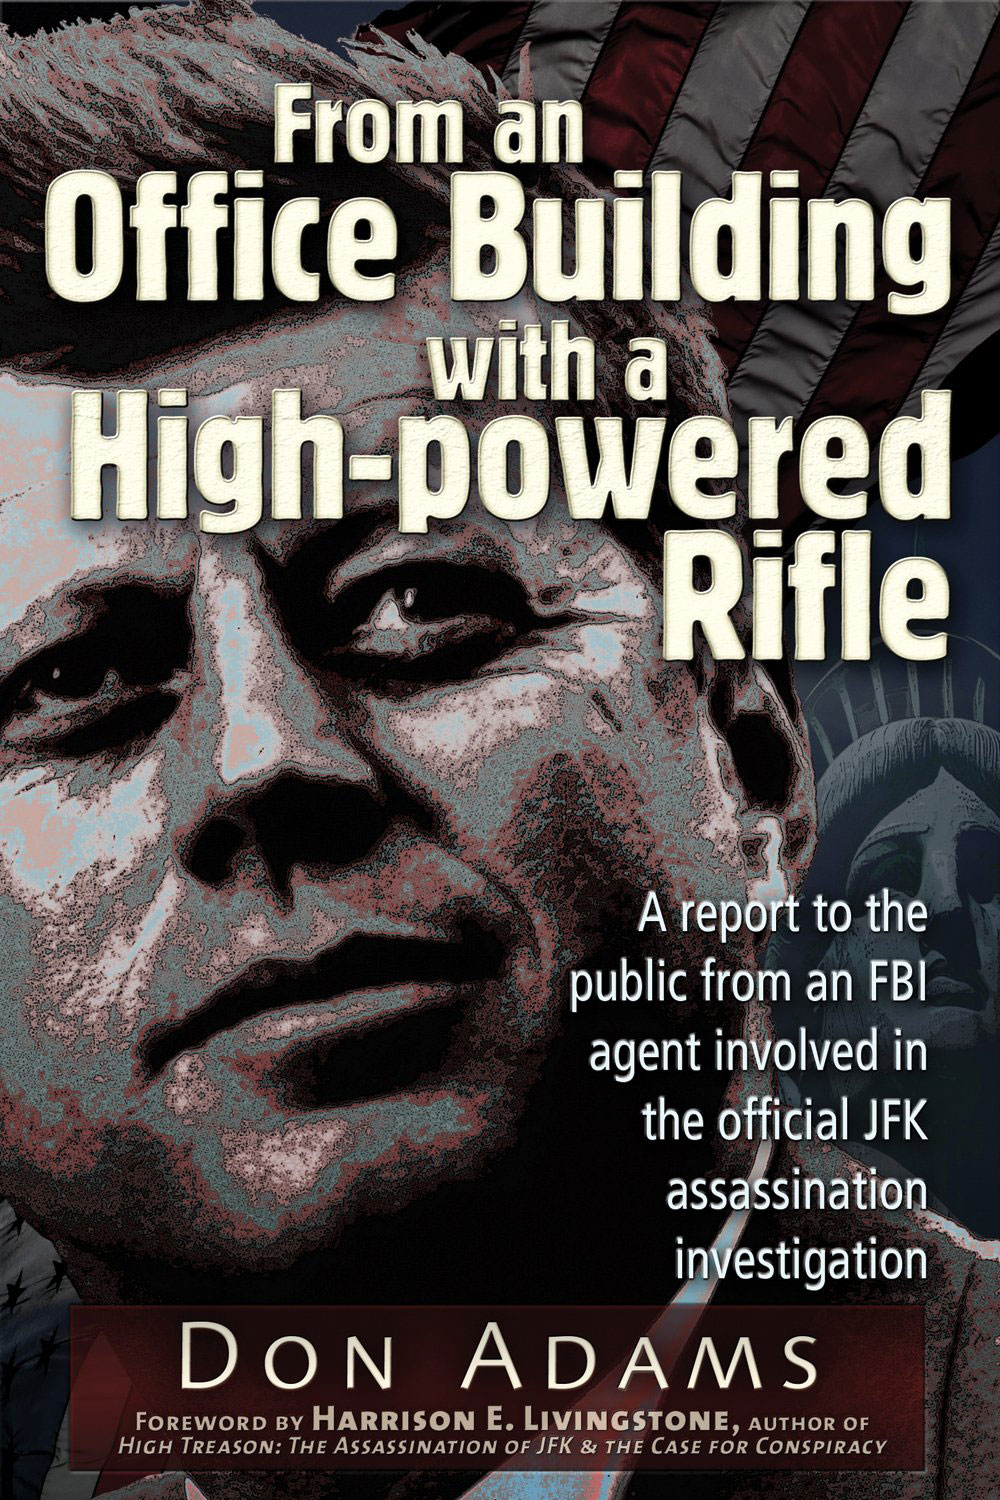 From an Office Building with a High-Powered Rifle: One FBI Agent's View of the JFK Assassination By: Don Adams,Harrison E. Livingstone